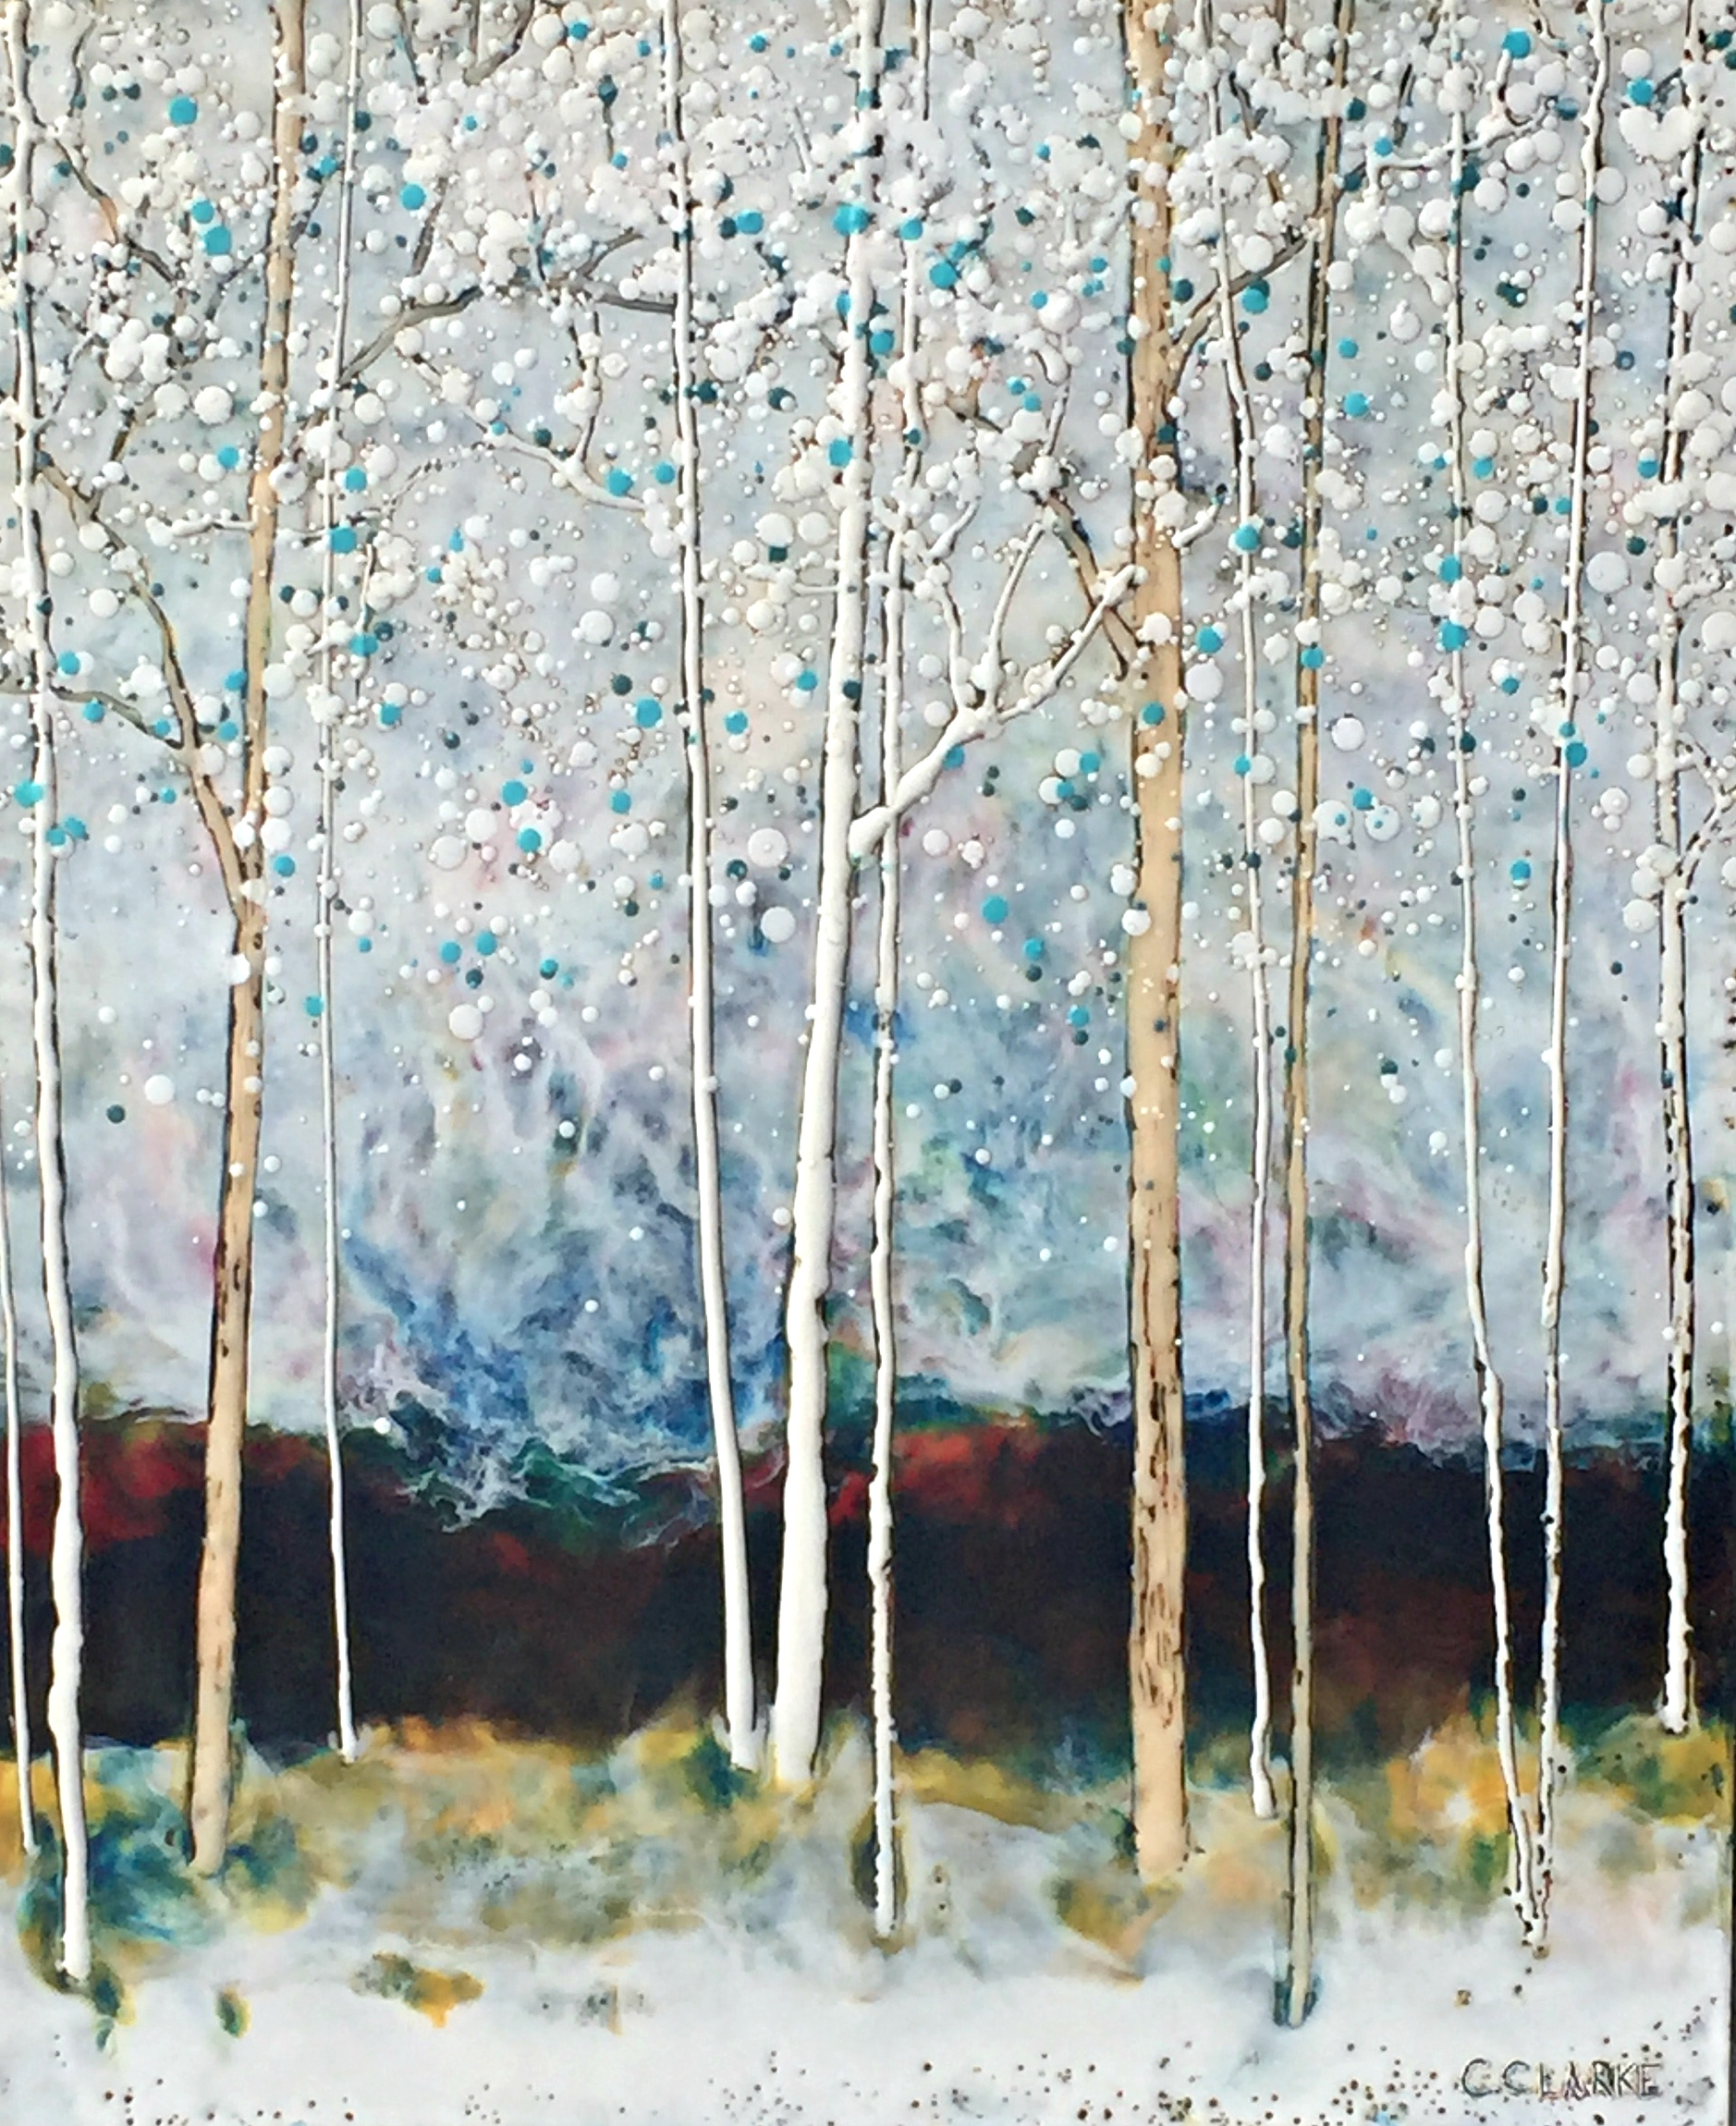 In My Sights, encaustic tree painting by Catharine Clarke | Effusion Art Gallery + Cast Glass Studio, Invermere BC